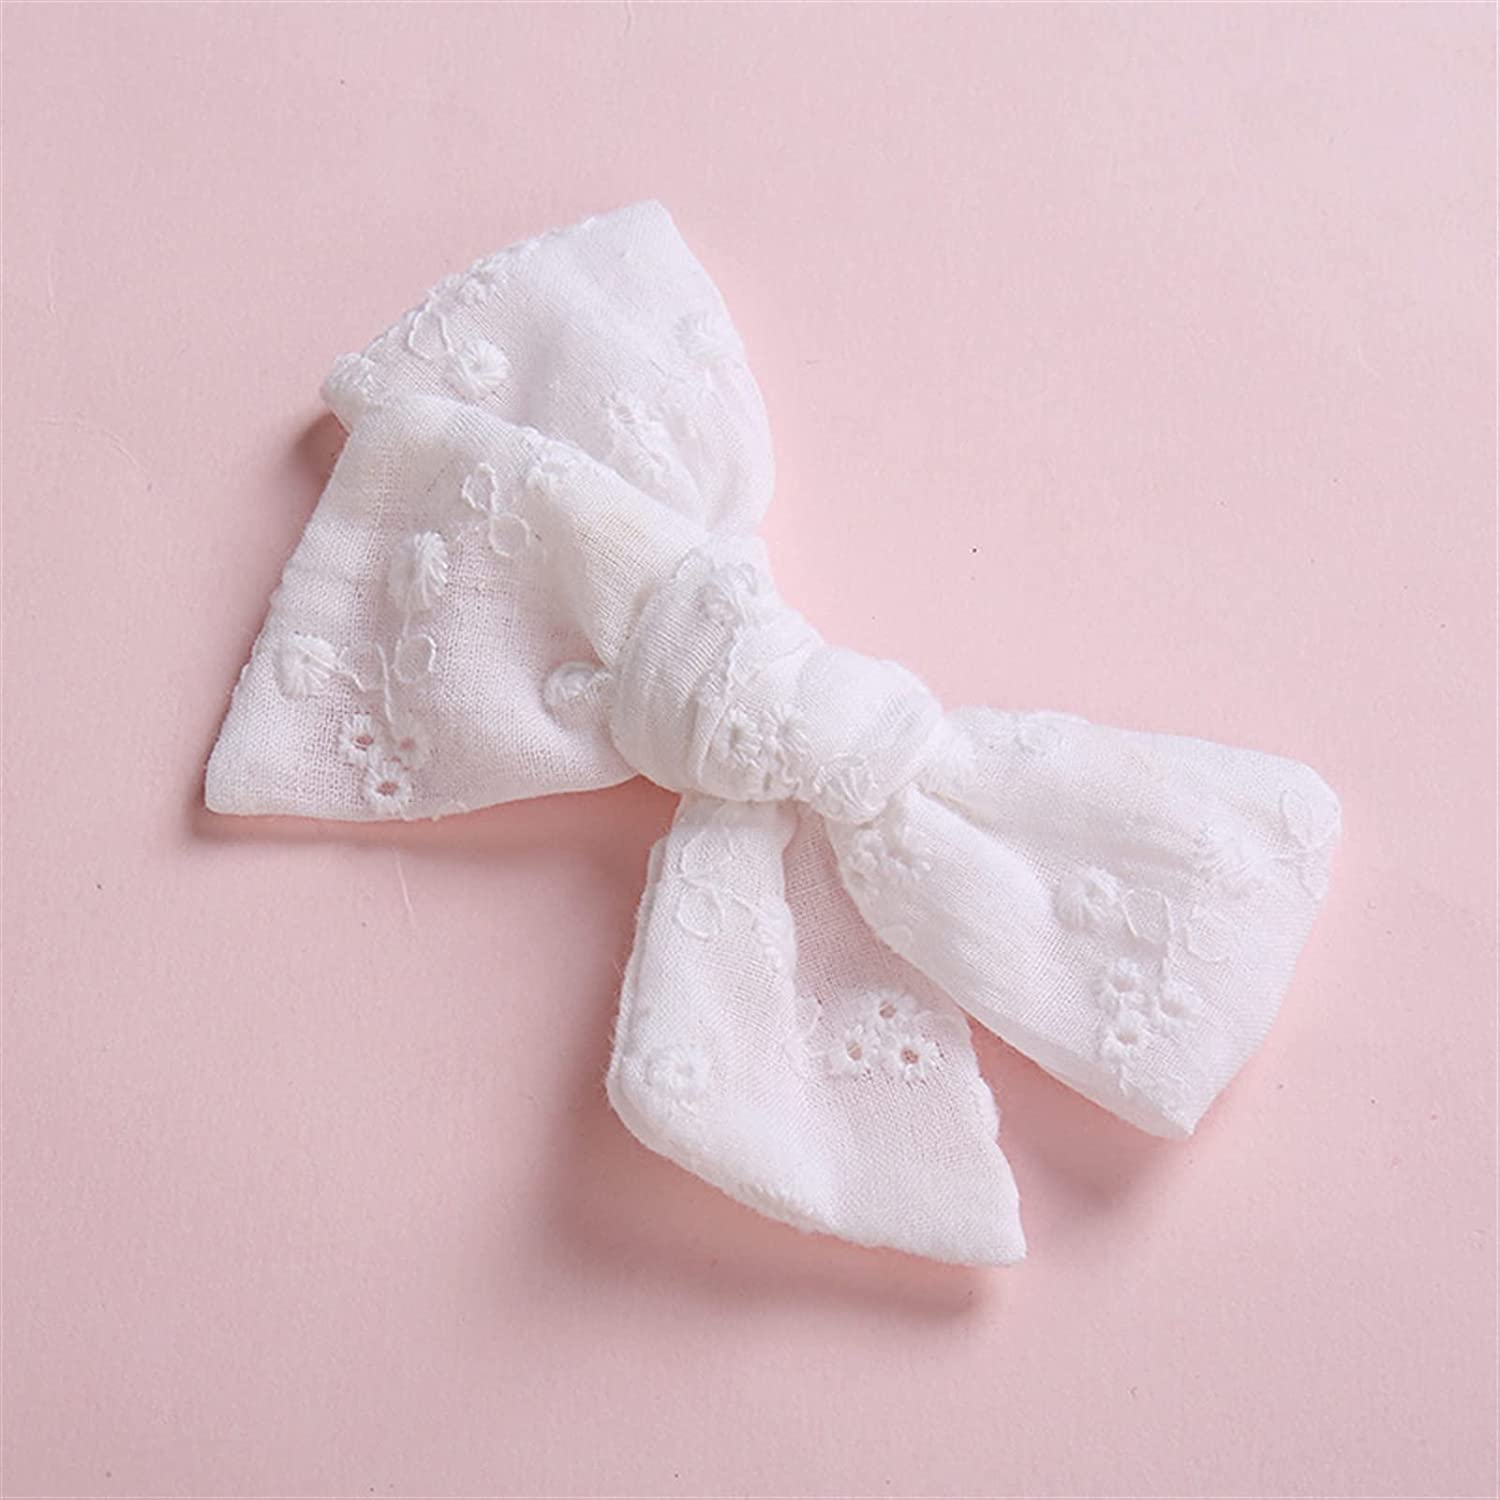 New York Mall Hair Limited time for free shipping accessories Pure White Lace Hollow Clips Bows Out